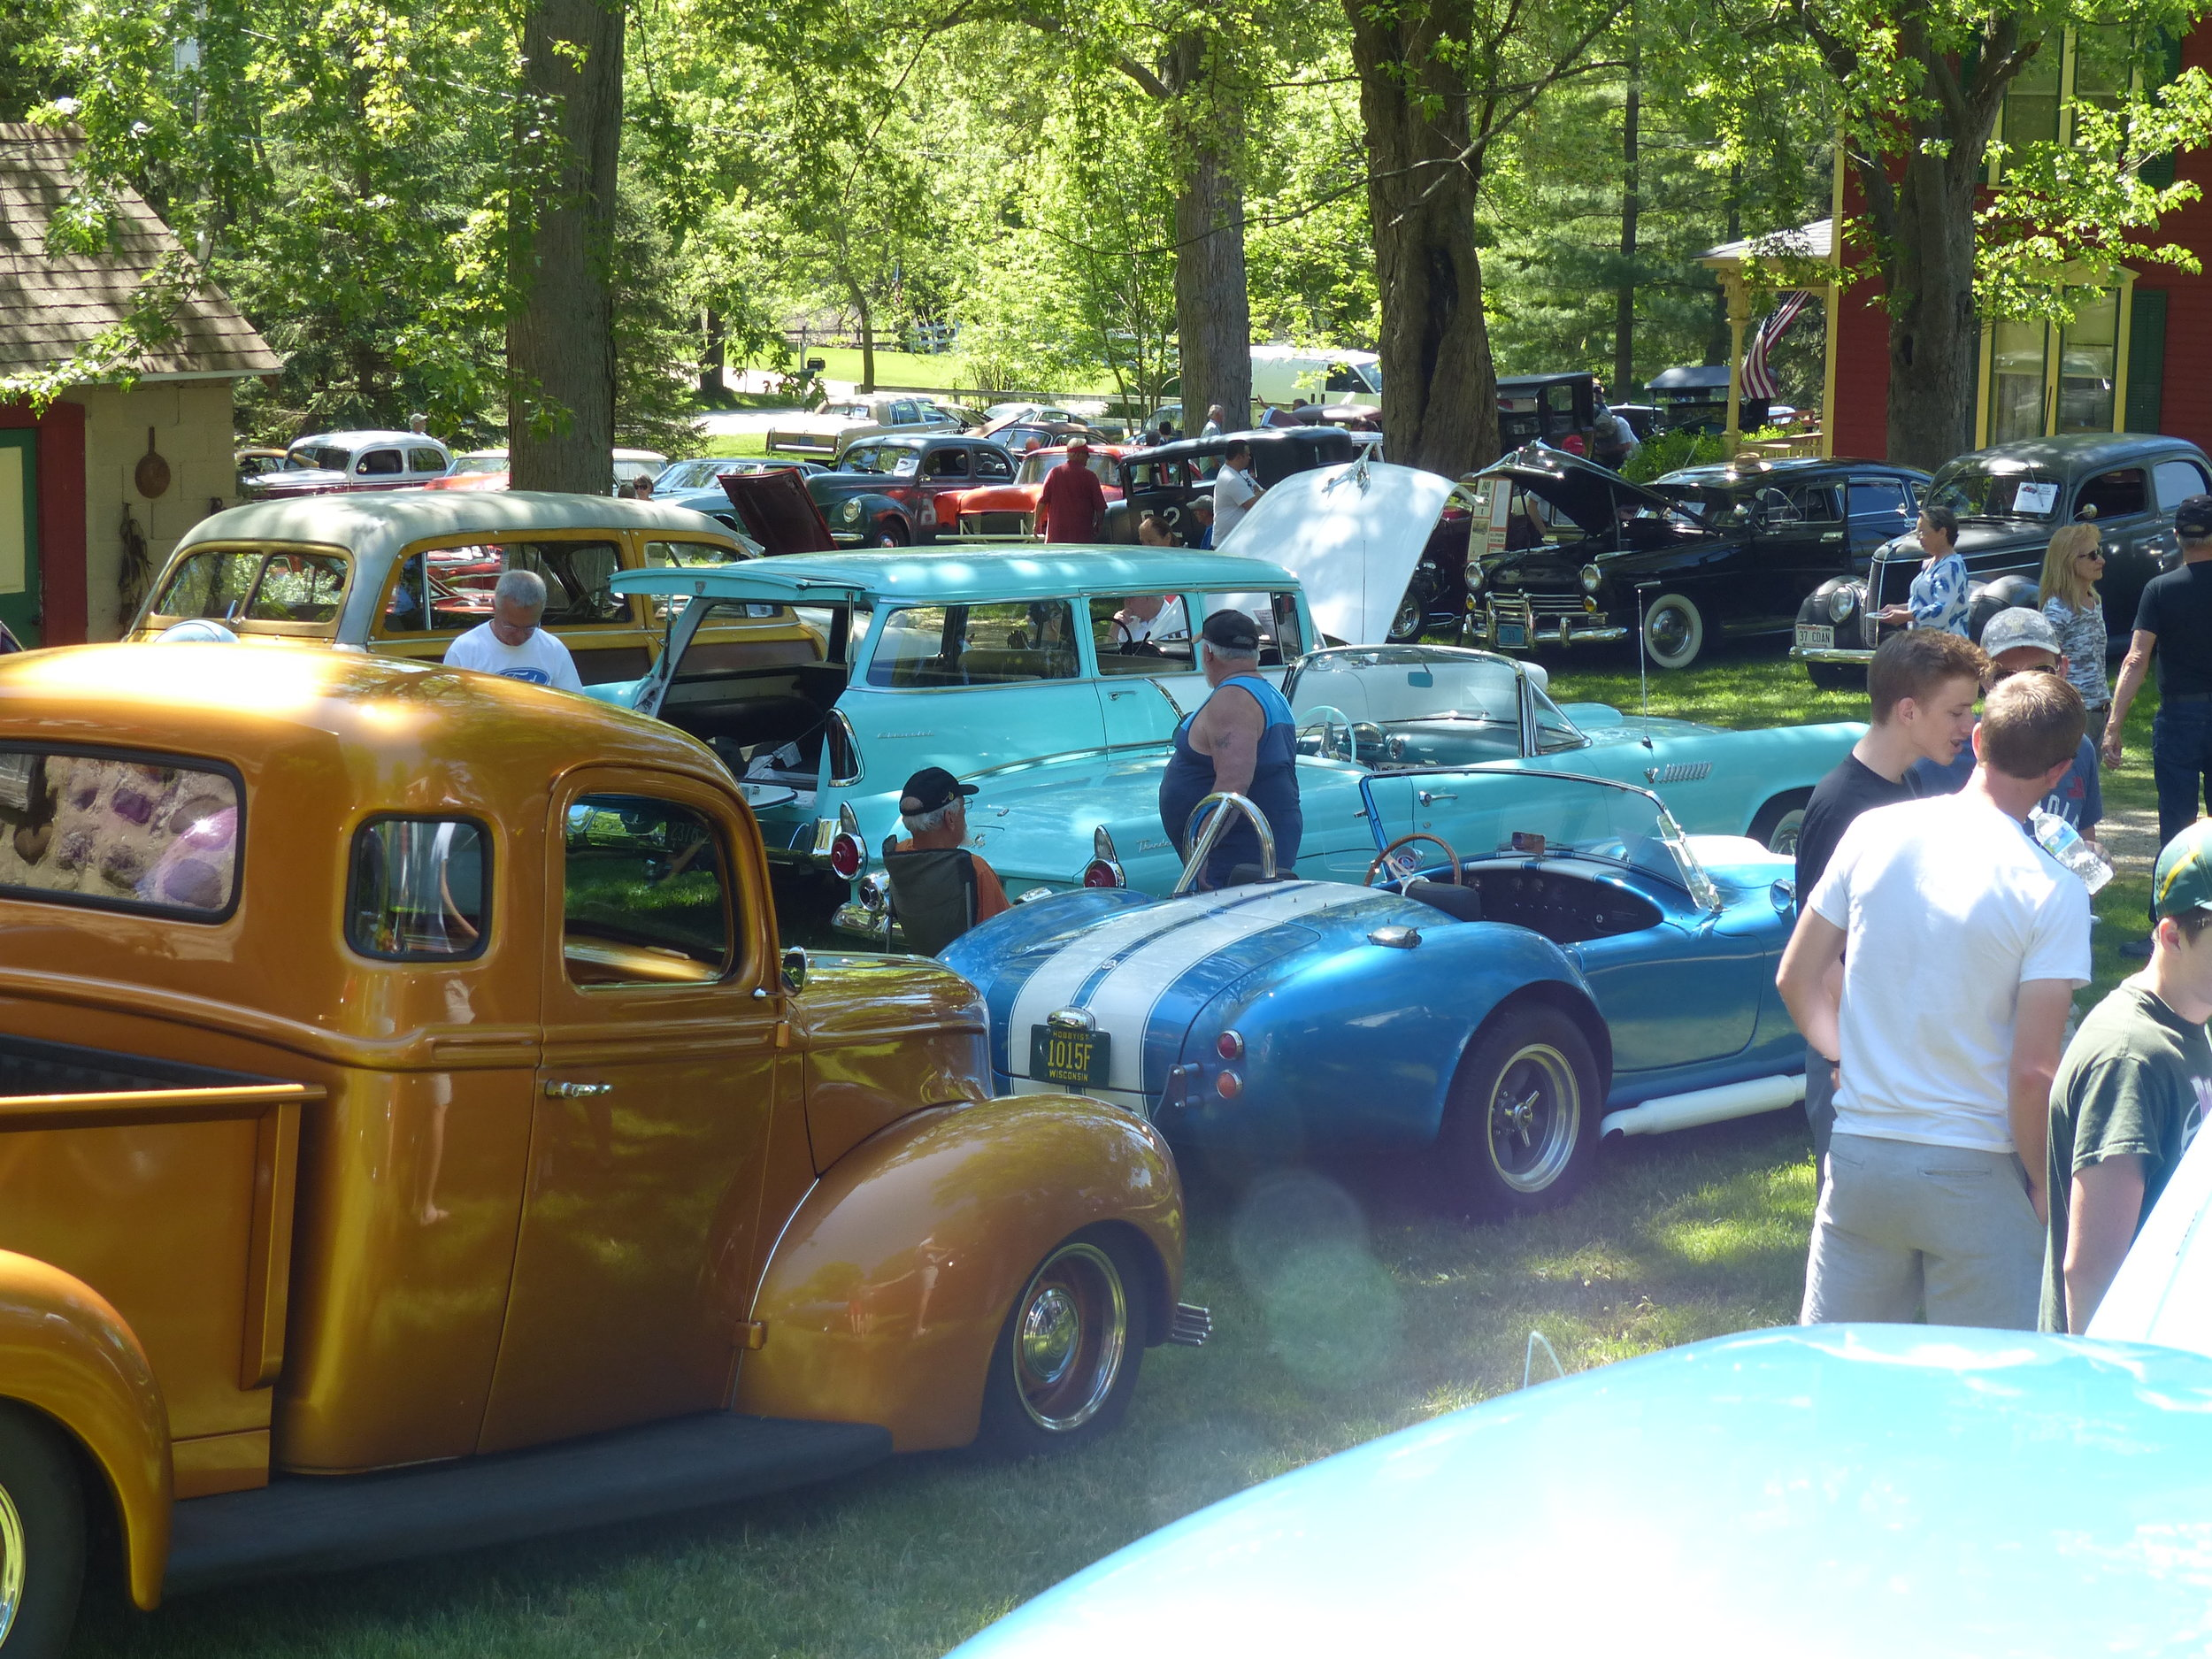 We see a wide variety of two- and four-wheeled (and sometimes six-wheeled) vehicles at Dick's Garage Reunion. The show is open to all antique, Classic, hot rod, street rod, resto-modded, rat-rodded, unrestored, restored, stock, modified, or race cars, trucks, bikes, and karts. Just about anything on engine-driven wheels.